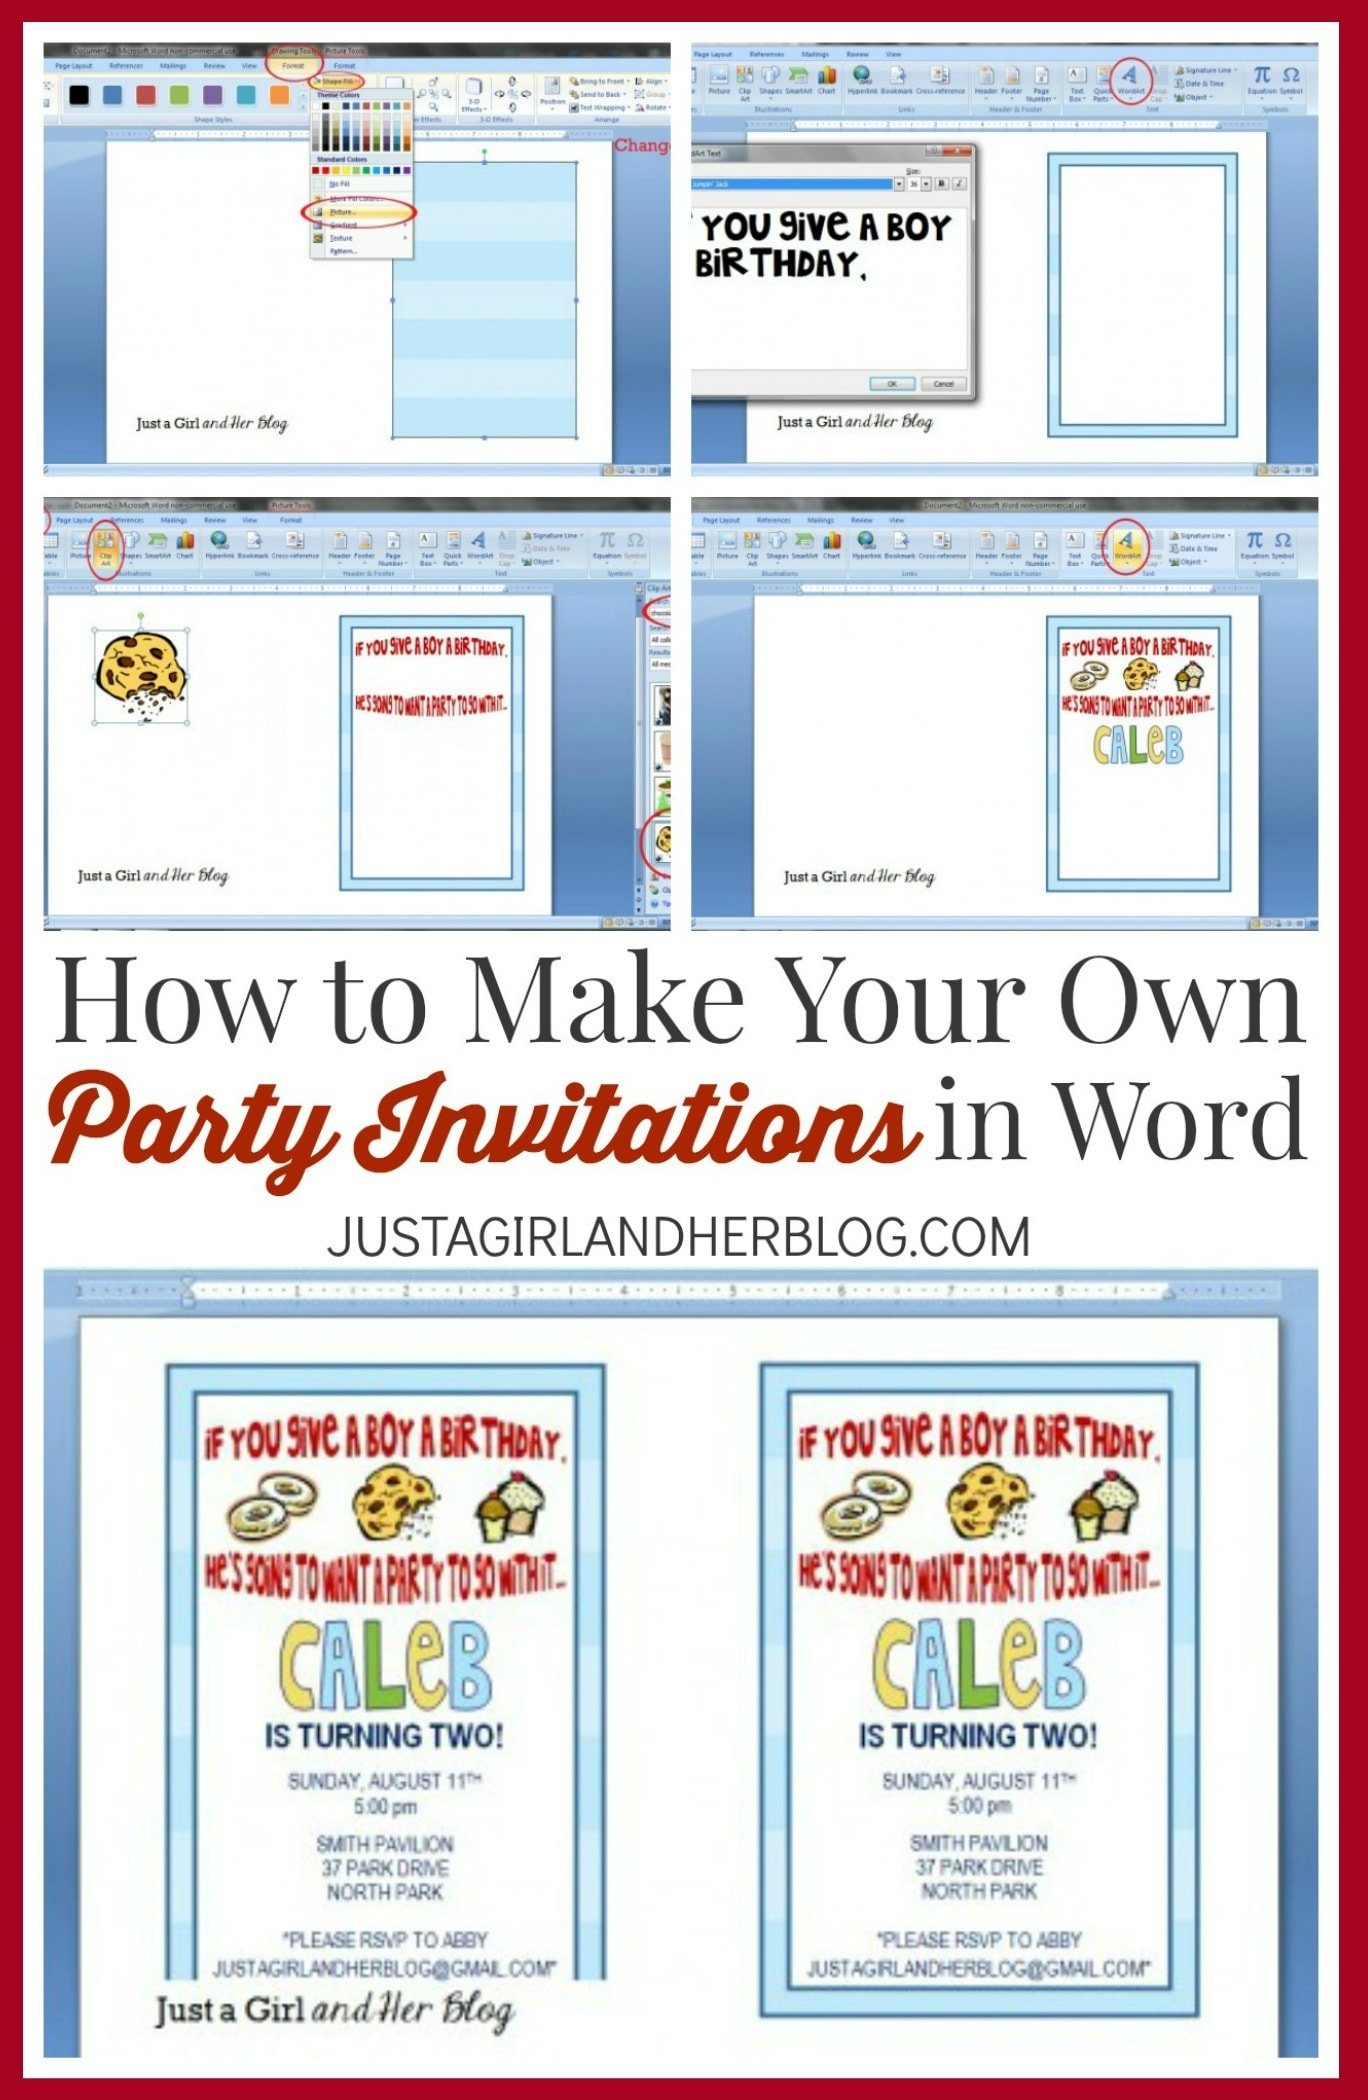 How To Make Your Own Party Invitations | Abby Lawson - Make Your Own Birthday Party Invitations Free Printable